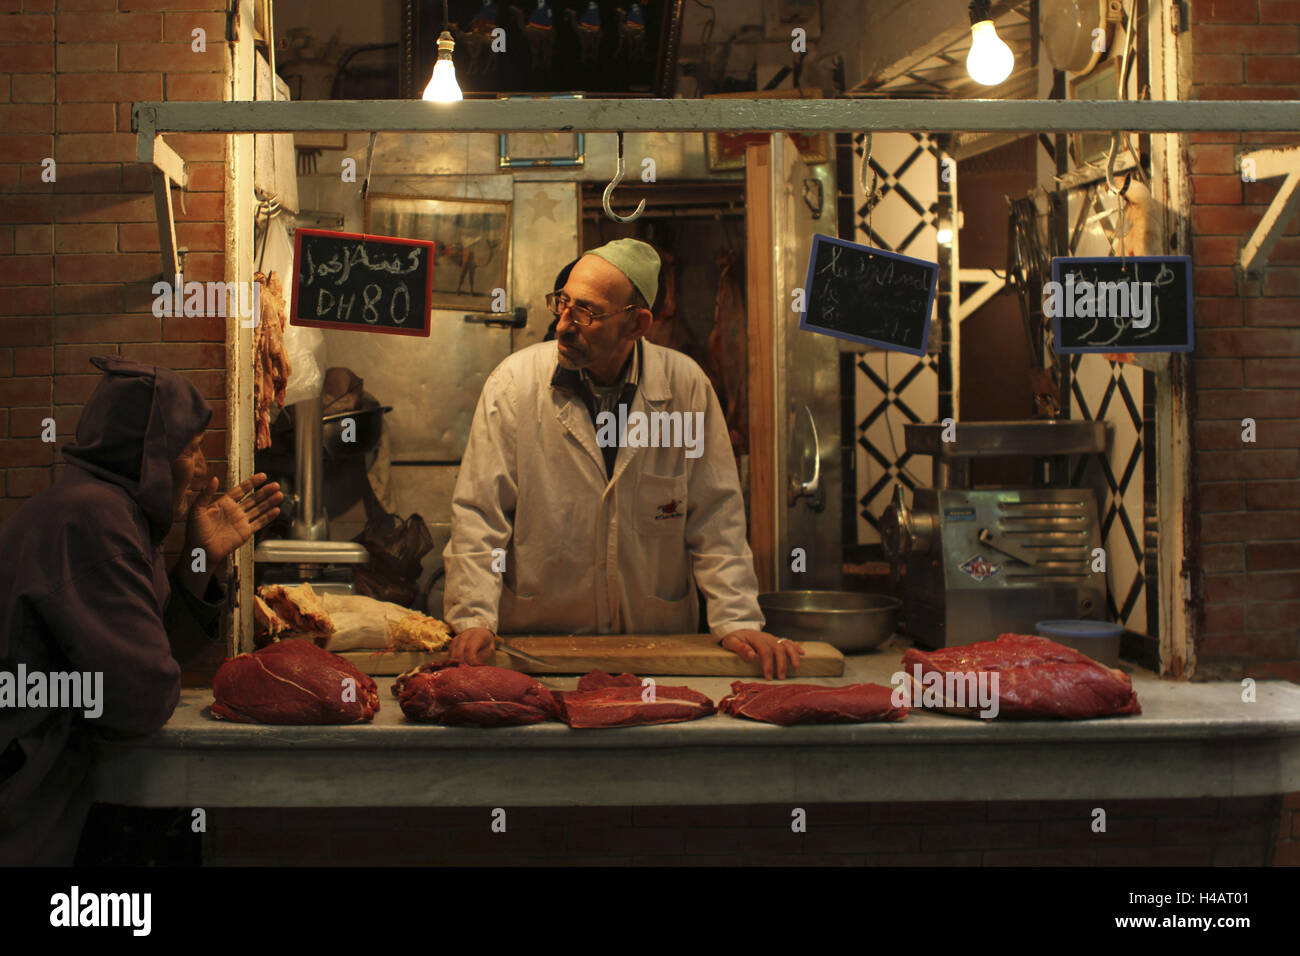 Africa, Morocco, Meknes, Medina, Souk, meat seller behind his stall, - Stock Image